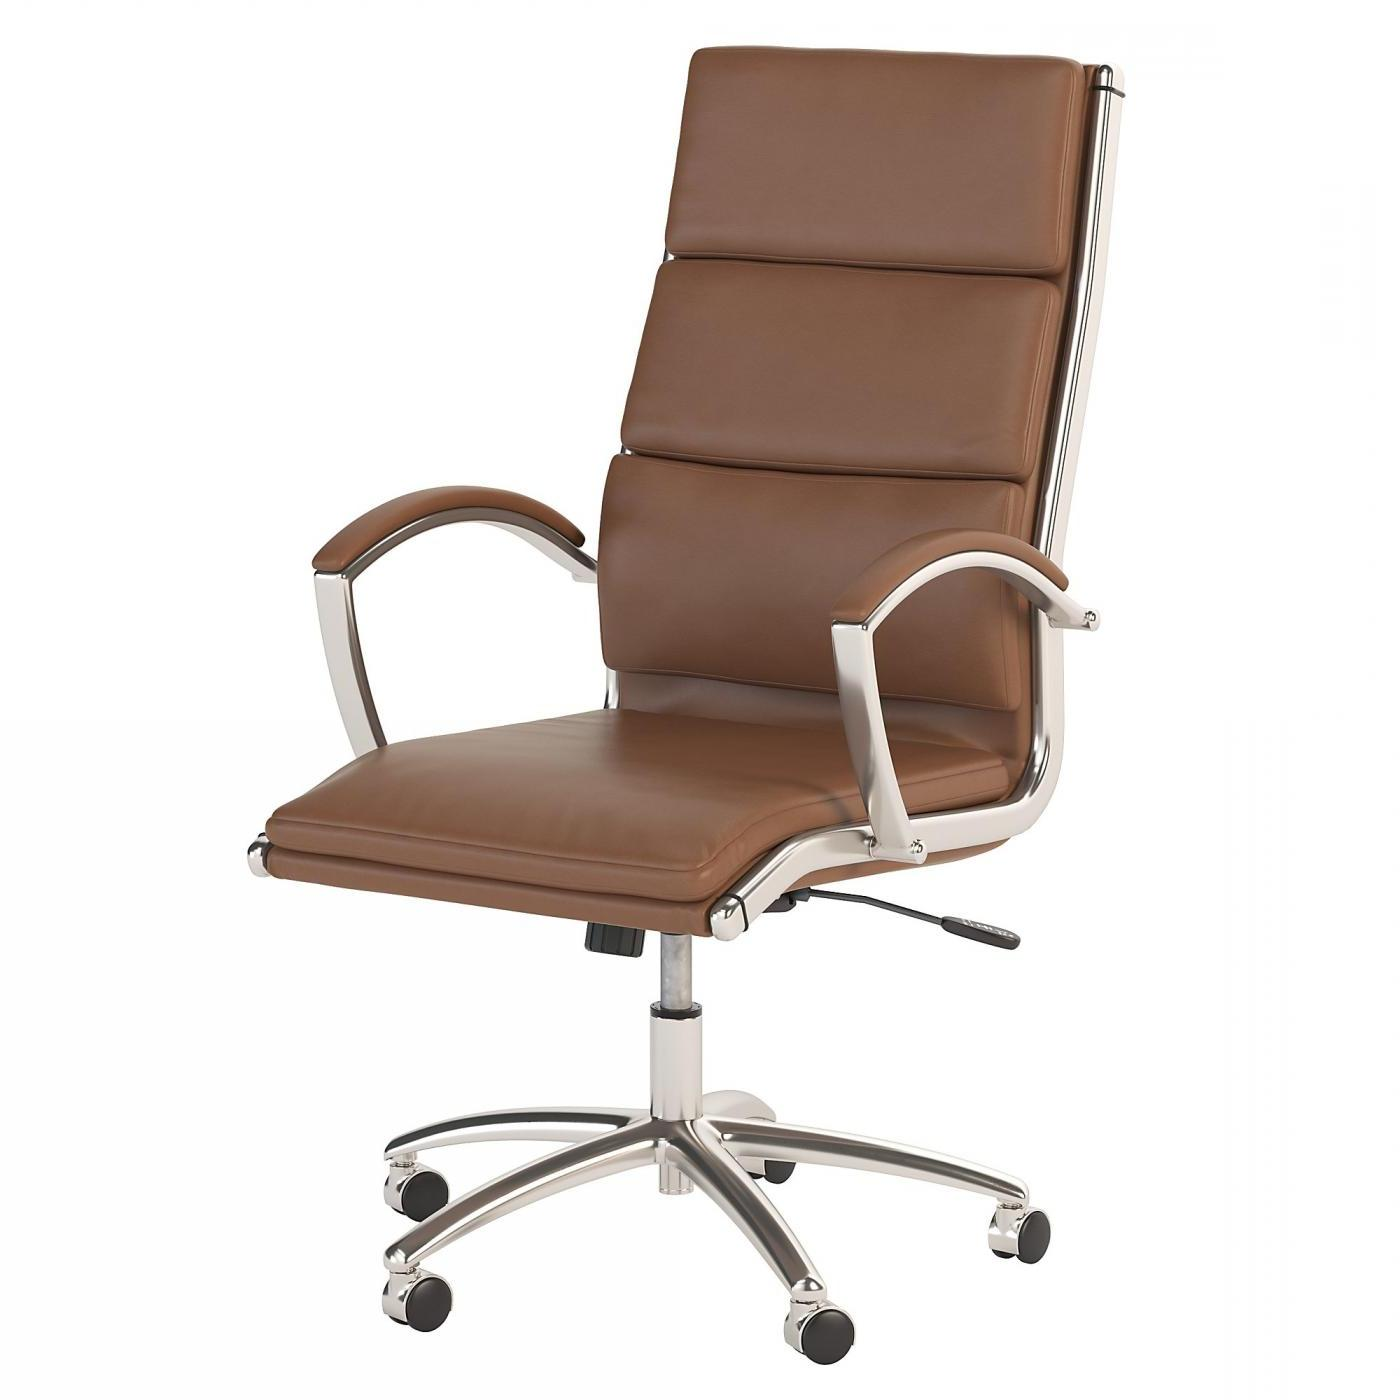 <font color=#c60><b>BUSH BUSINESS FURNITURE MODELO HIGH BACK LEATHER EXECUTIVE OFFICE CHAIR #EH-CH1701SDL-03. FREE SHIPPING:</font></b> </font></b></font></b>